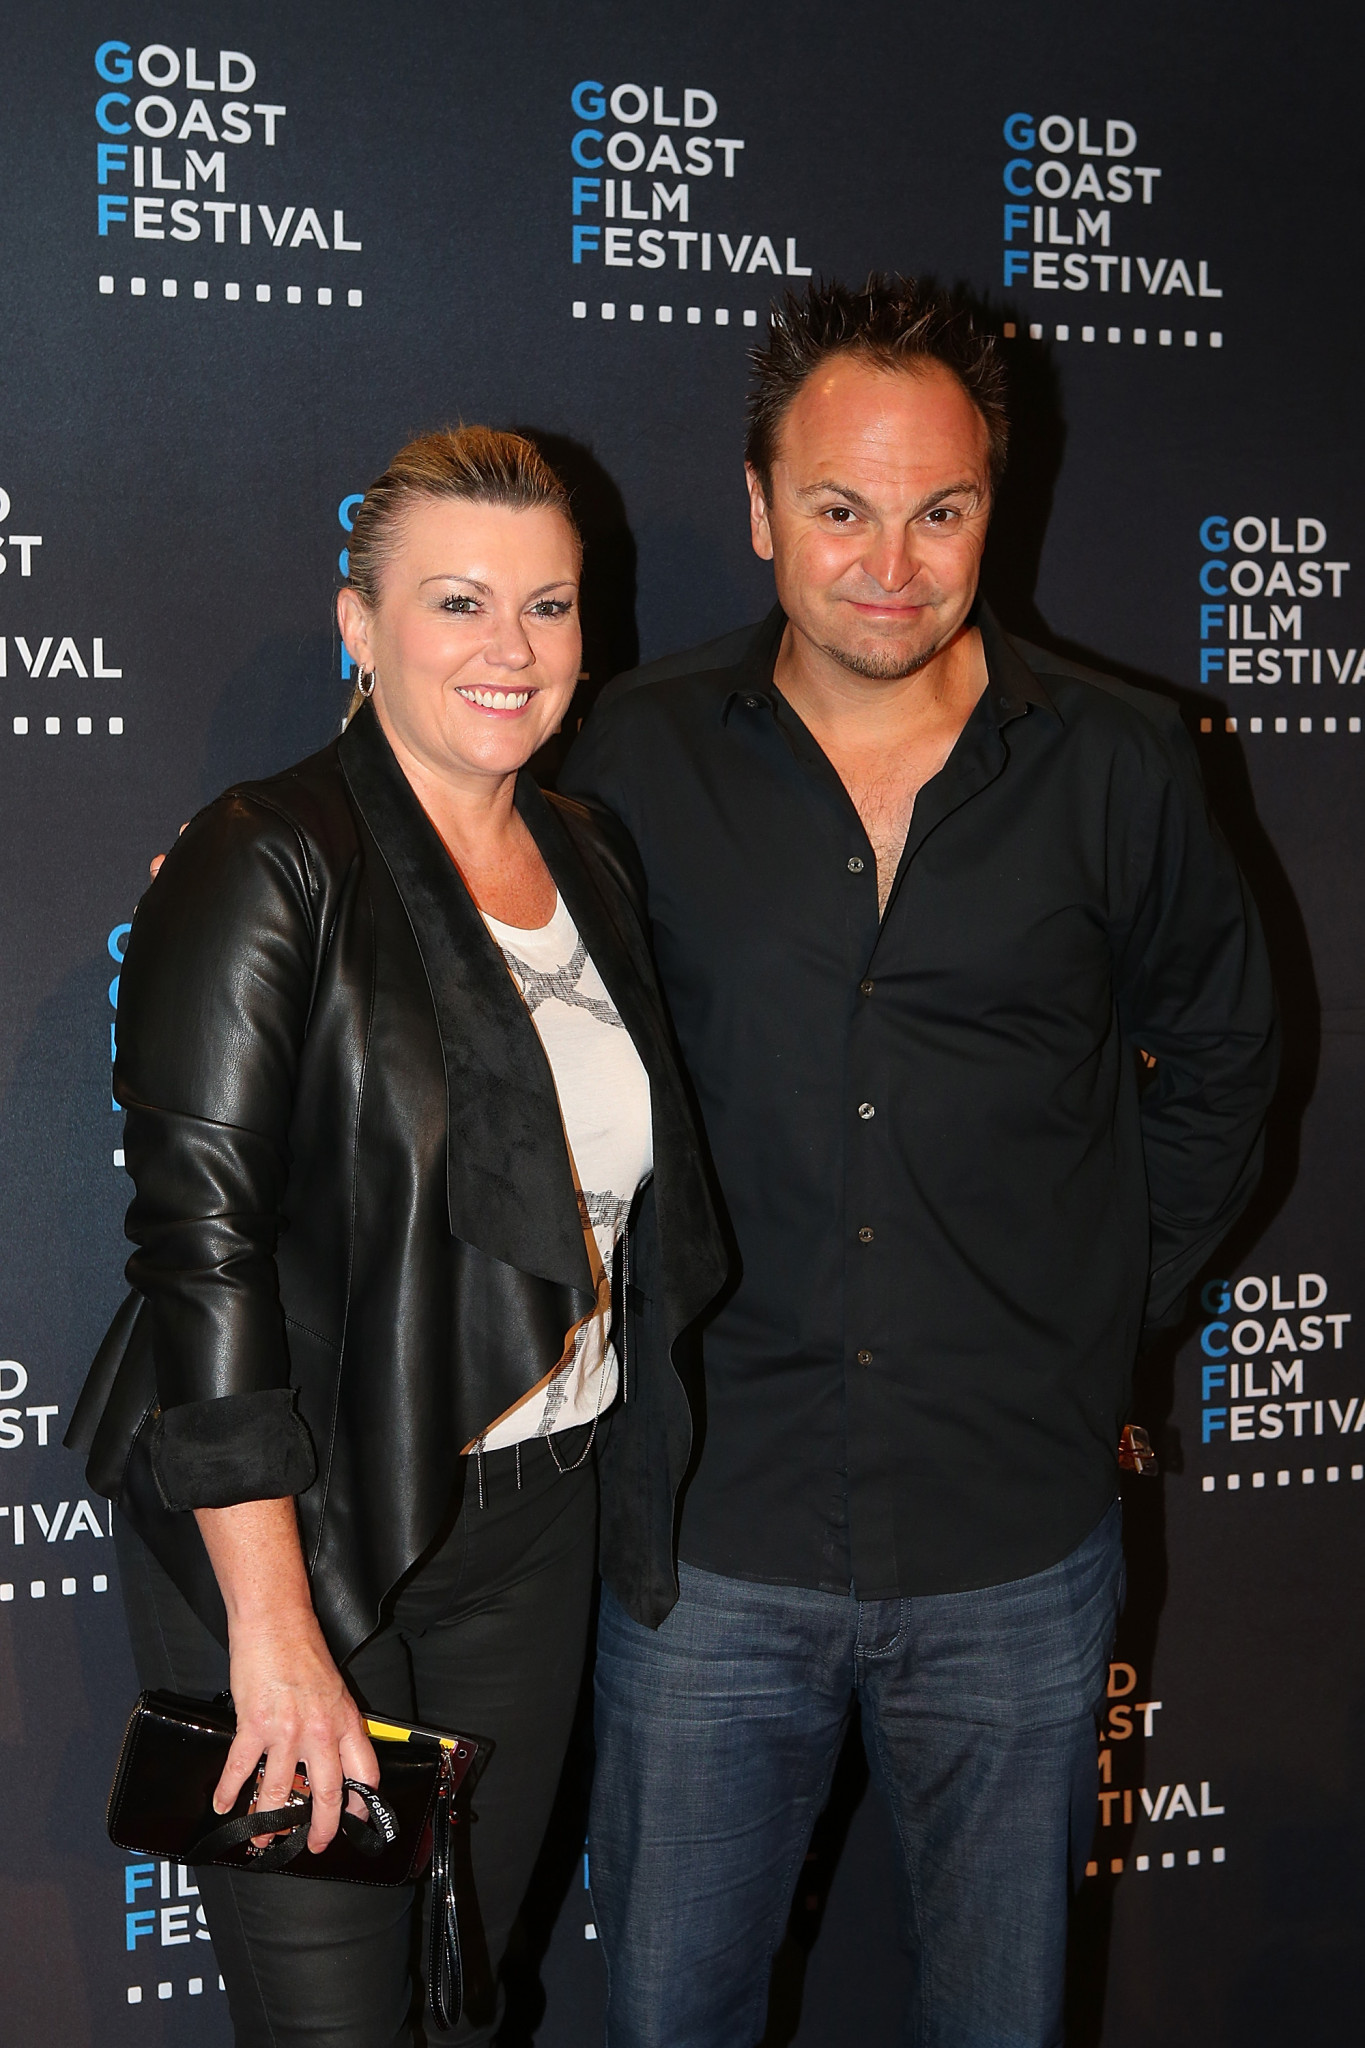 Australia's first Winter Olympic champion Steven Bradbury and wife at the opening night of the 2016 Gold Coast Film Festival. Now a film is being planned about his life, entitled Last Man Standing ©Getty Images